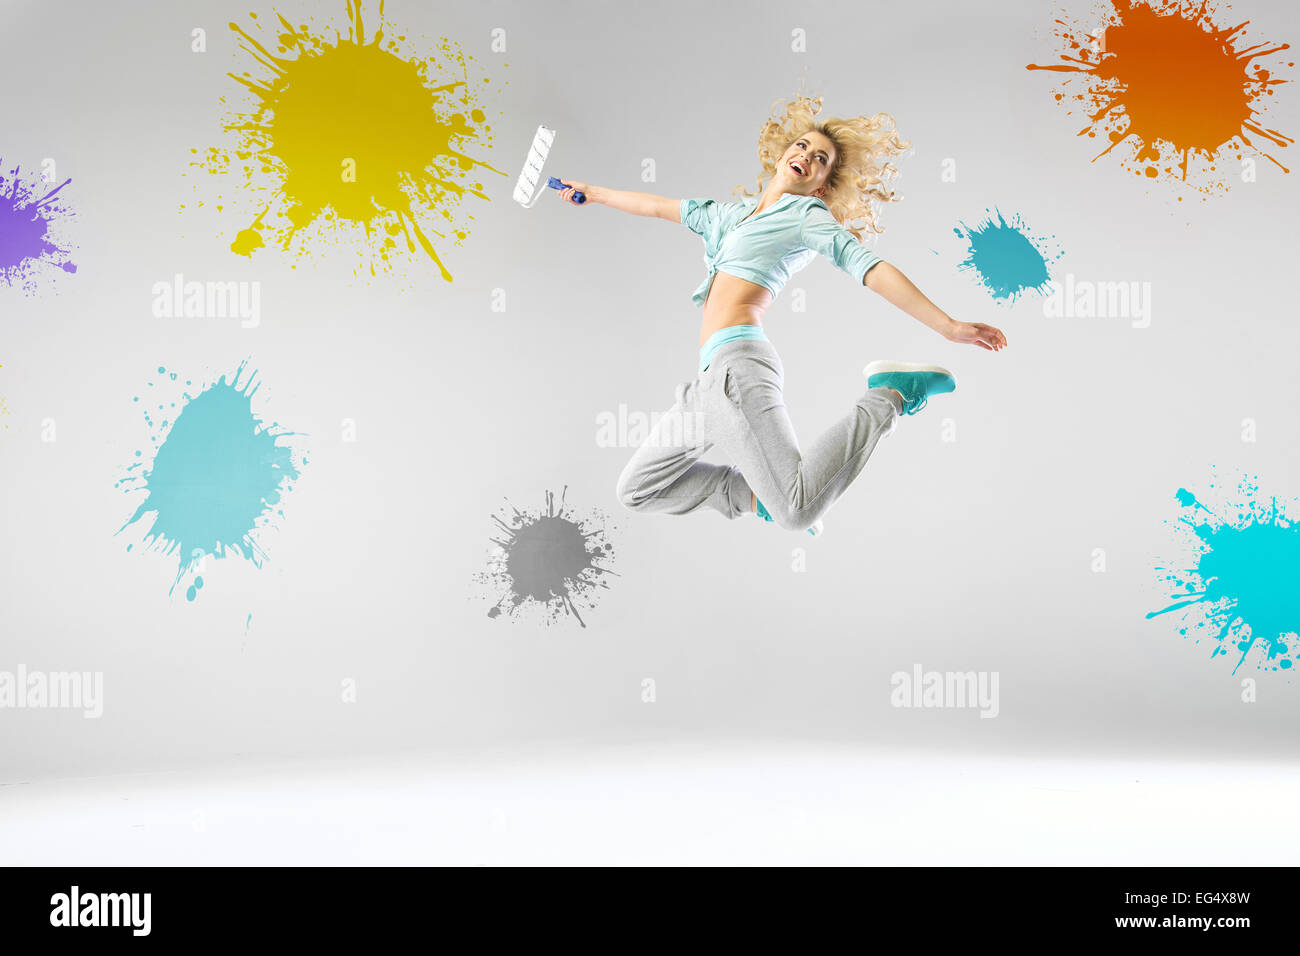 Lady jumping and paiting walls - Stock Image